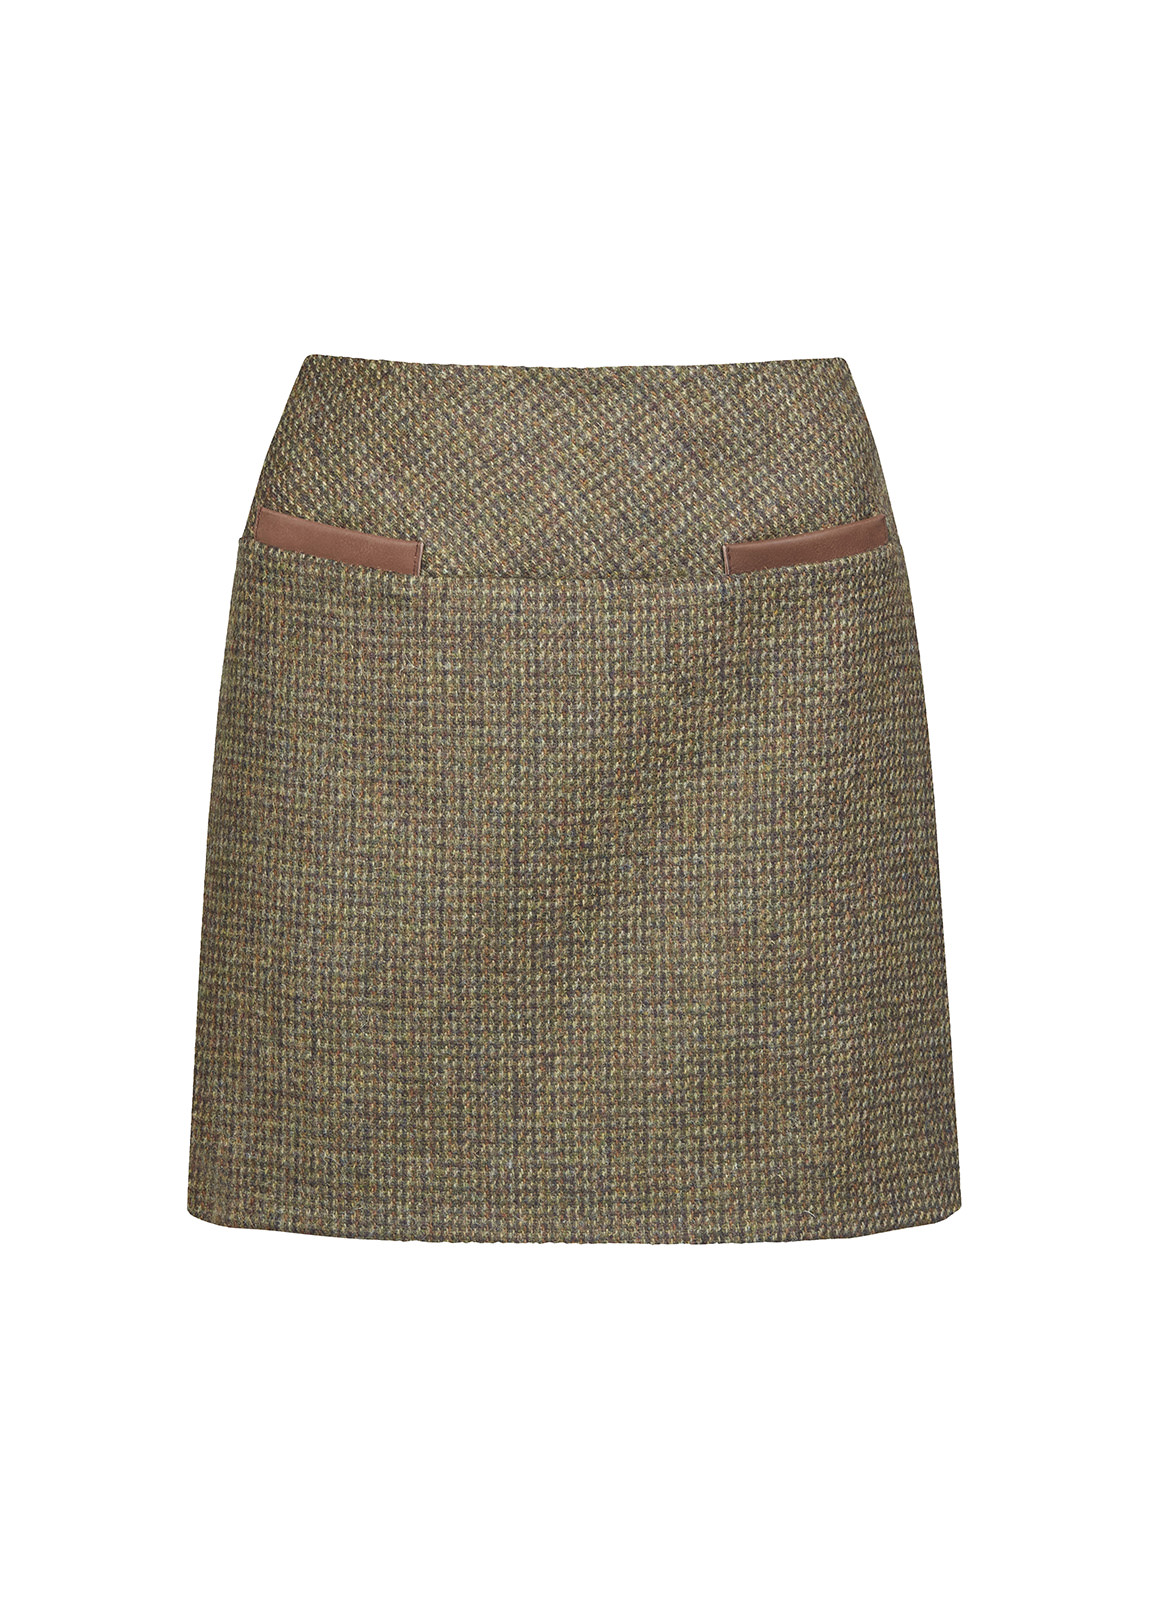 Dubarry_ Clover Tweed Mini Skirt - Heath_Image_2